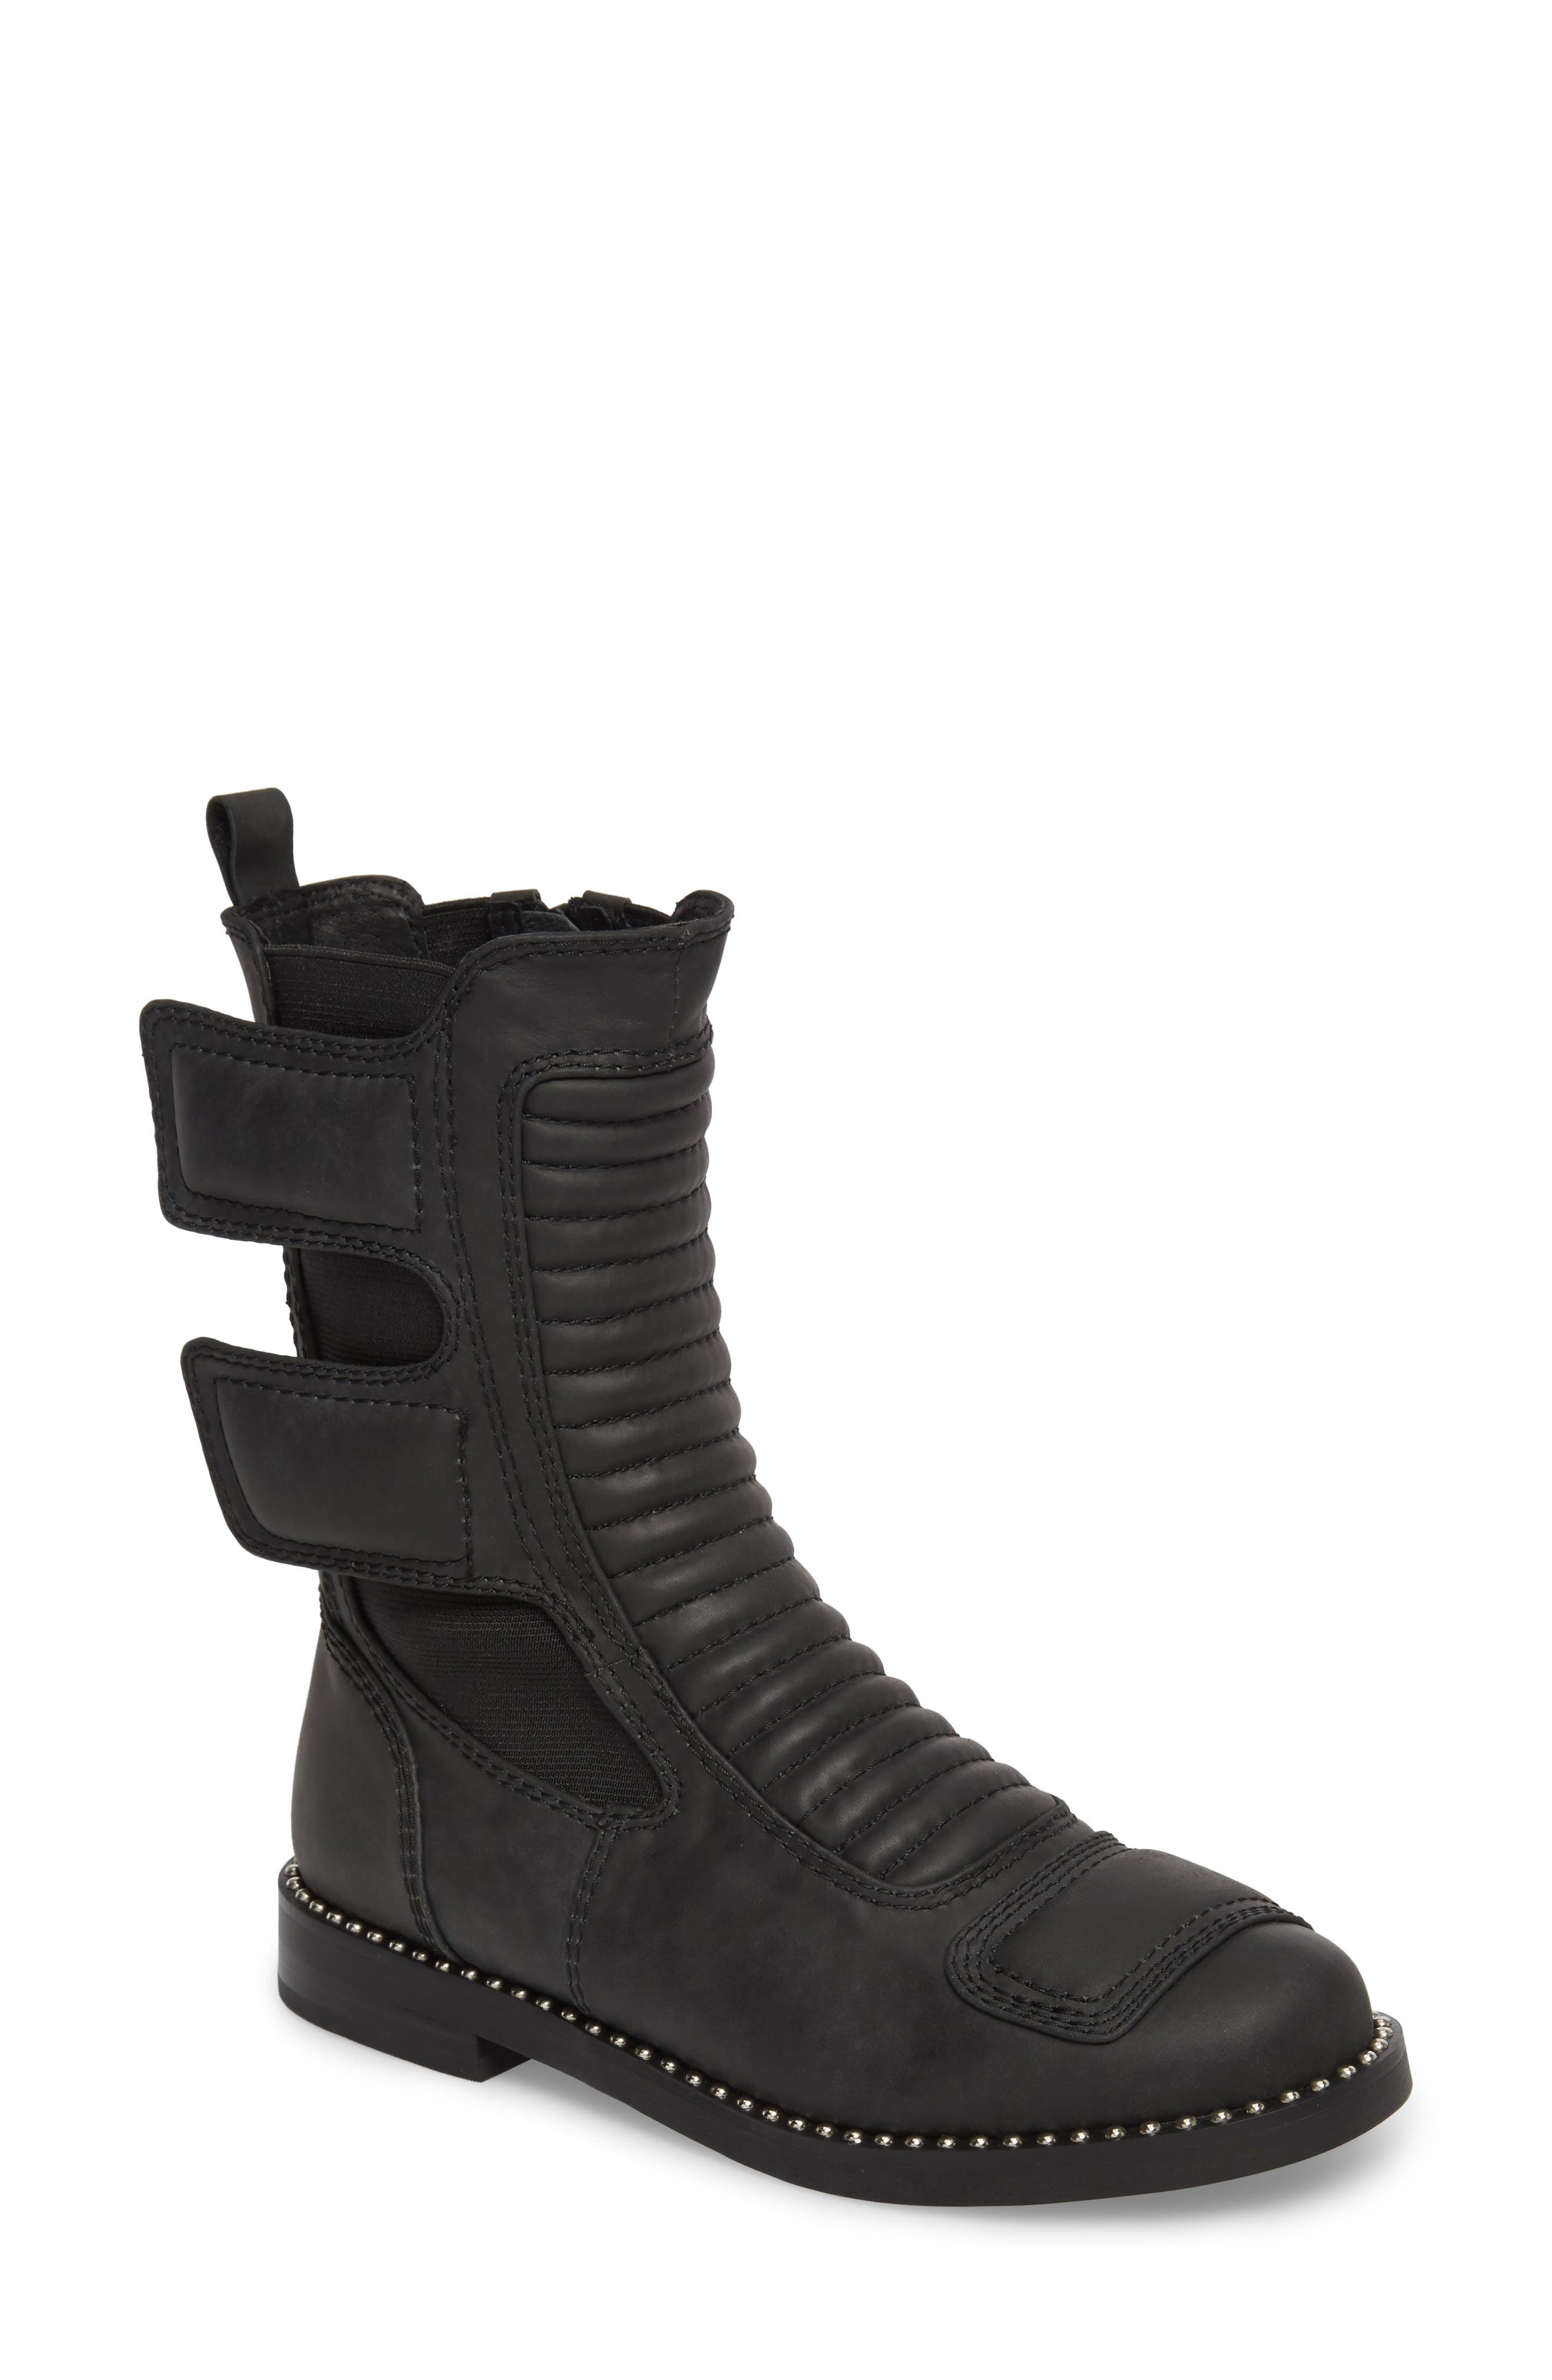 Police Boot,                         Main,                         color,